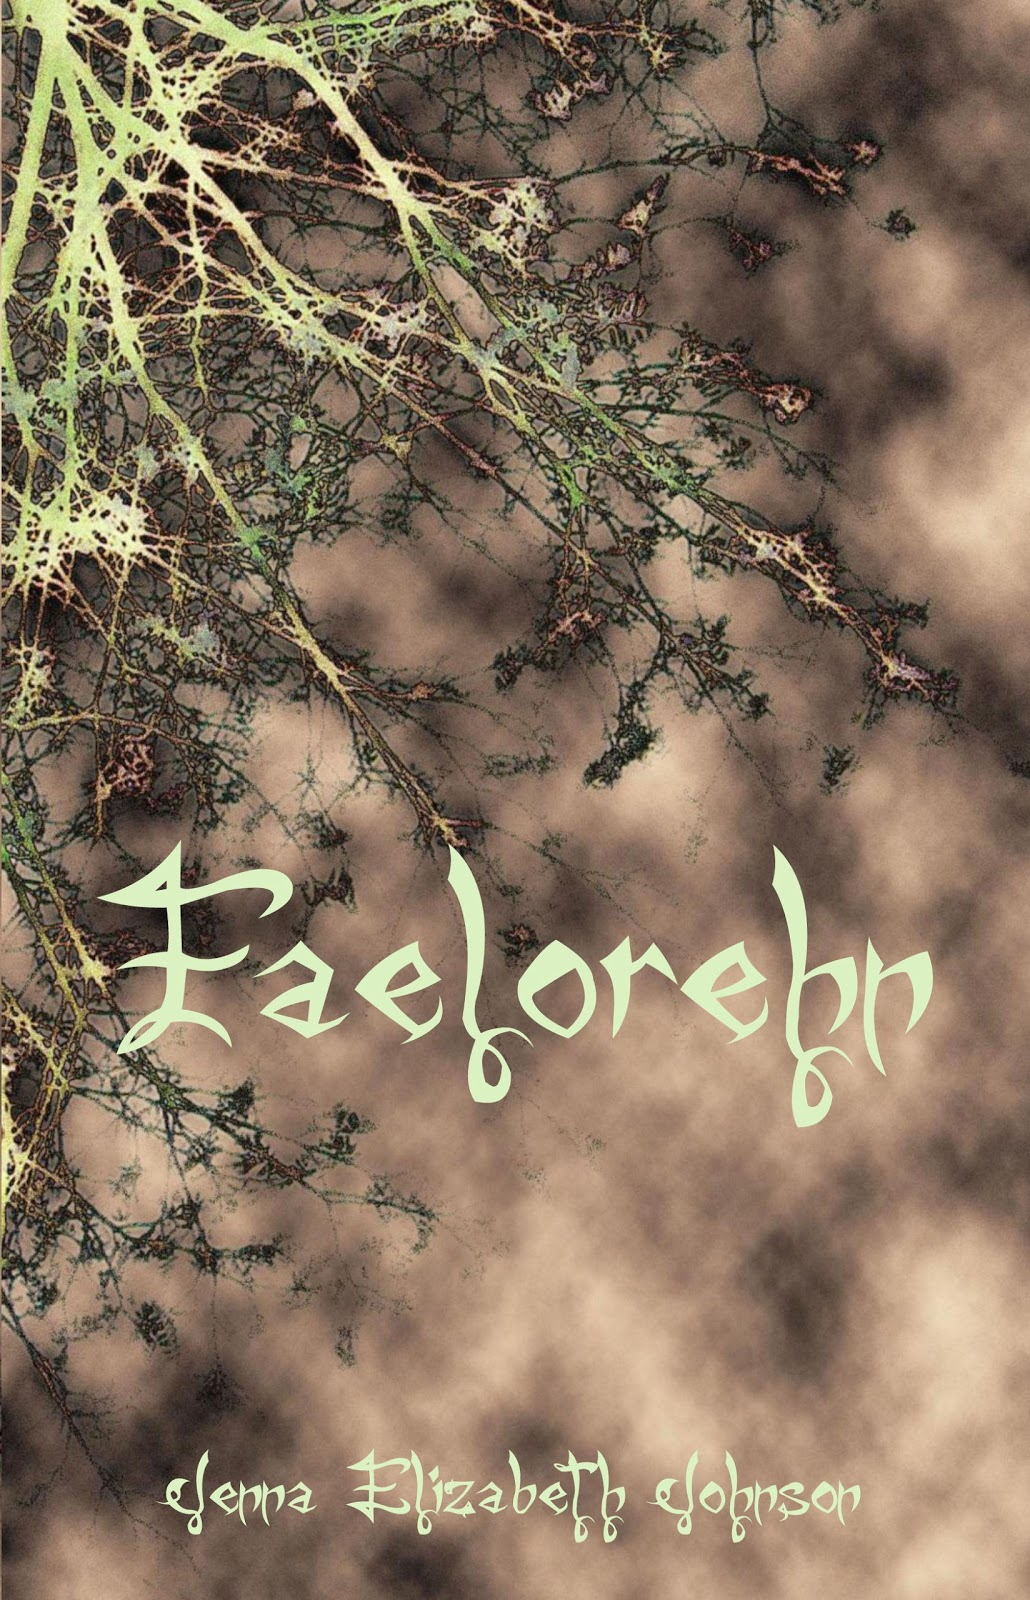 The Story Begins With Faelorehn, The First Book Of The Otherworld Trilogy